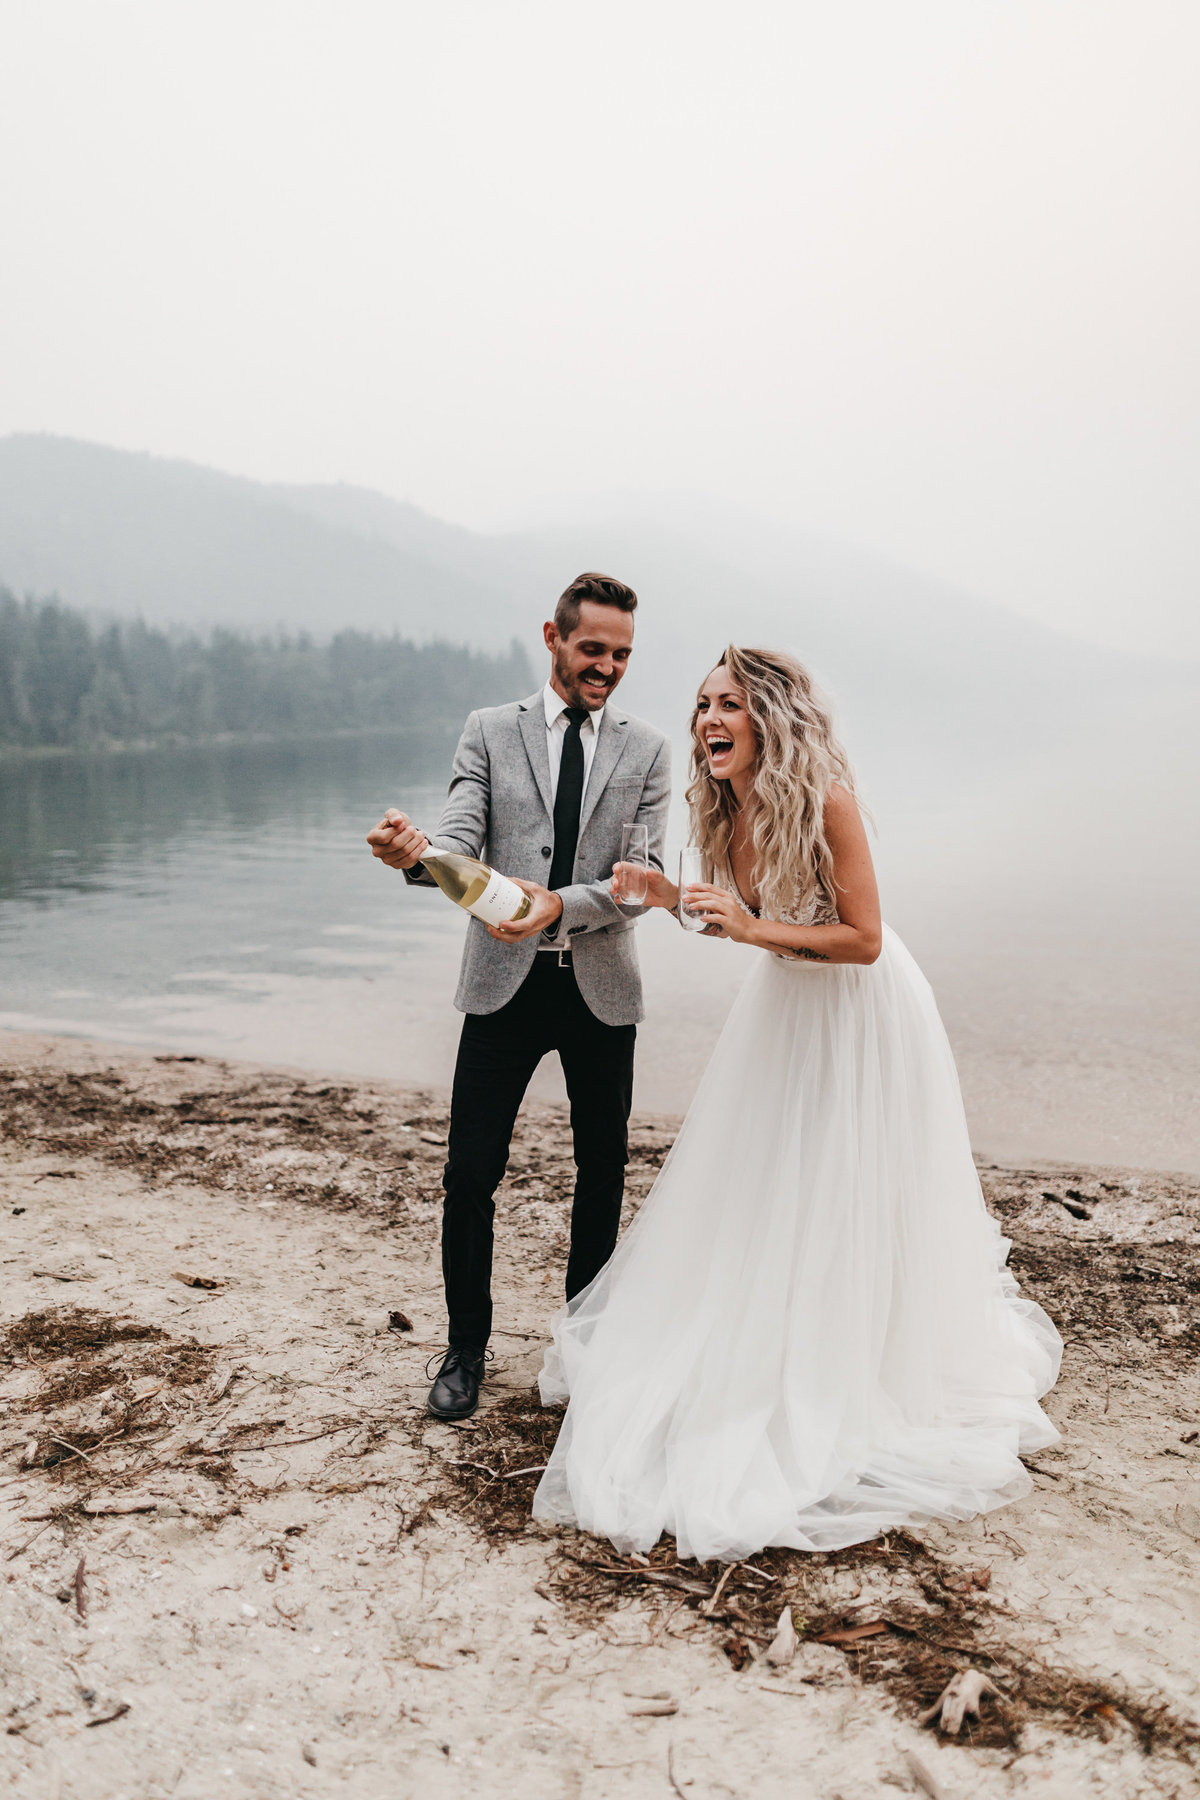 athena-and-camron-sara-truvelle-bridal-wenatchee-elopement-intimate-40-champagne-pop-bride-groom-fun